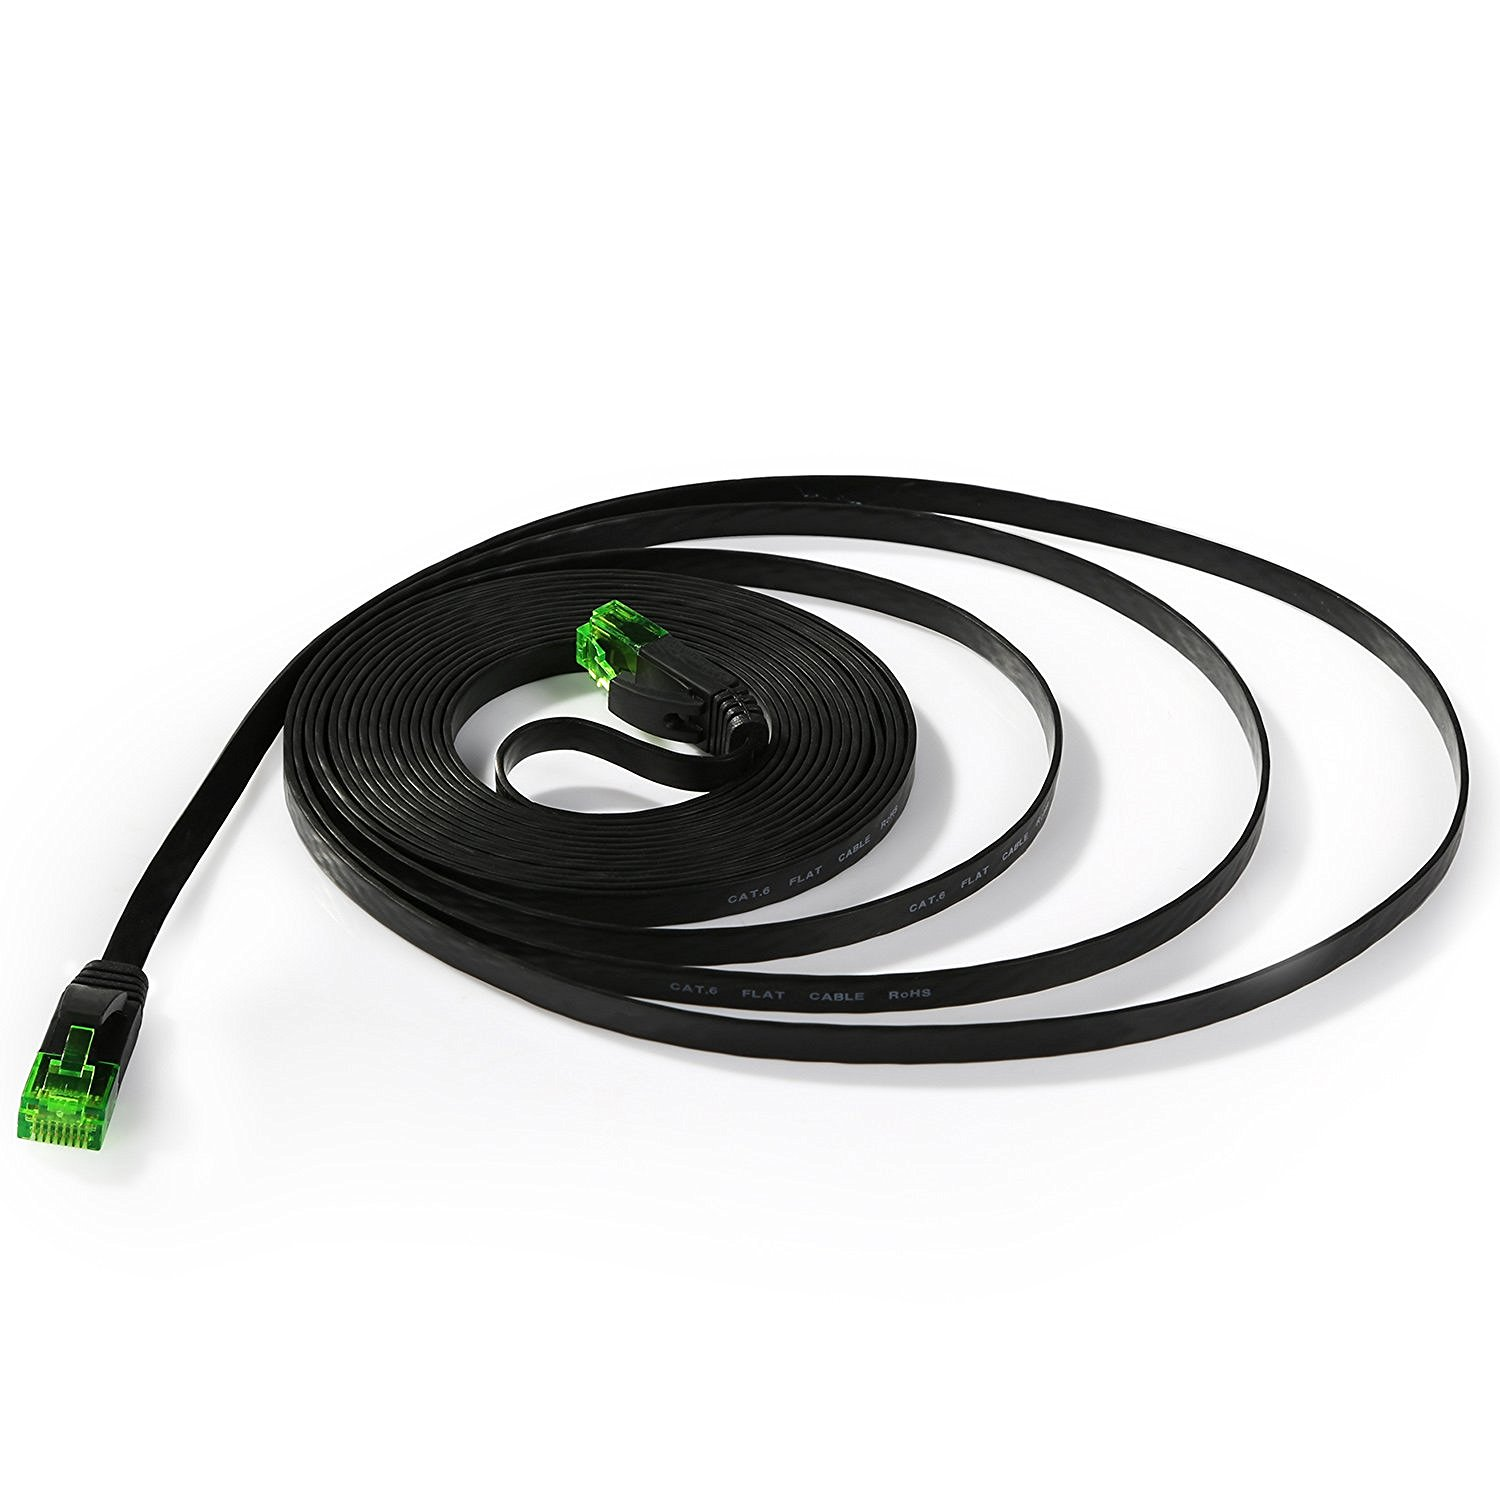 Green-cat6 flat patch cable-3